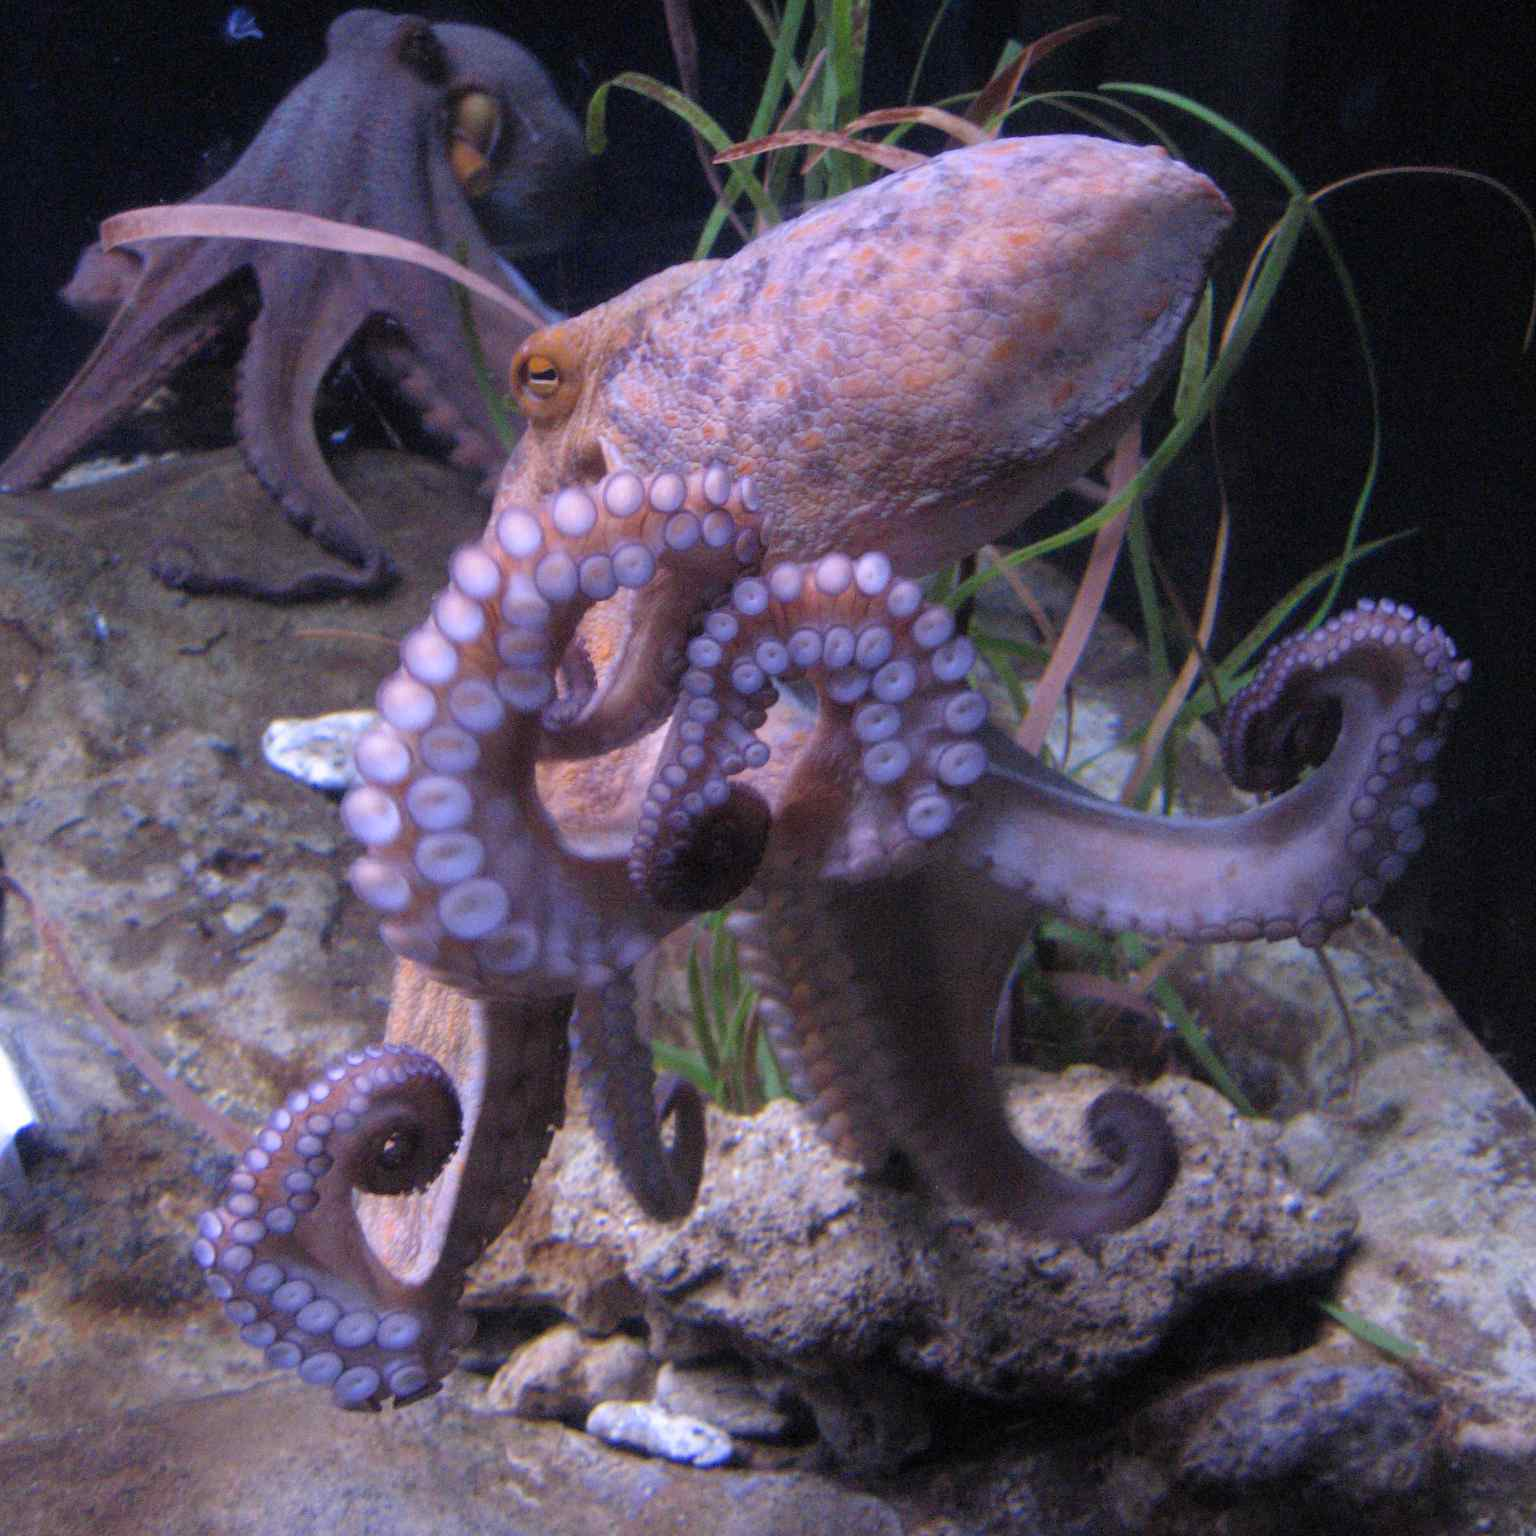 fascinating facts about octopus tentacles and ink